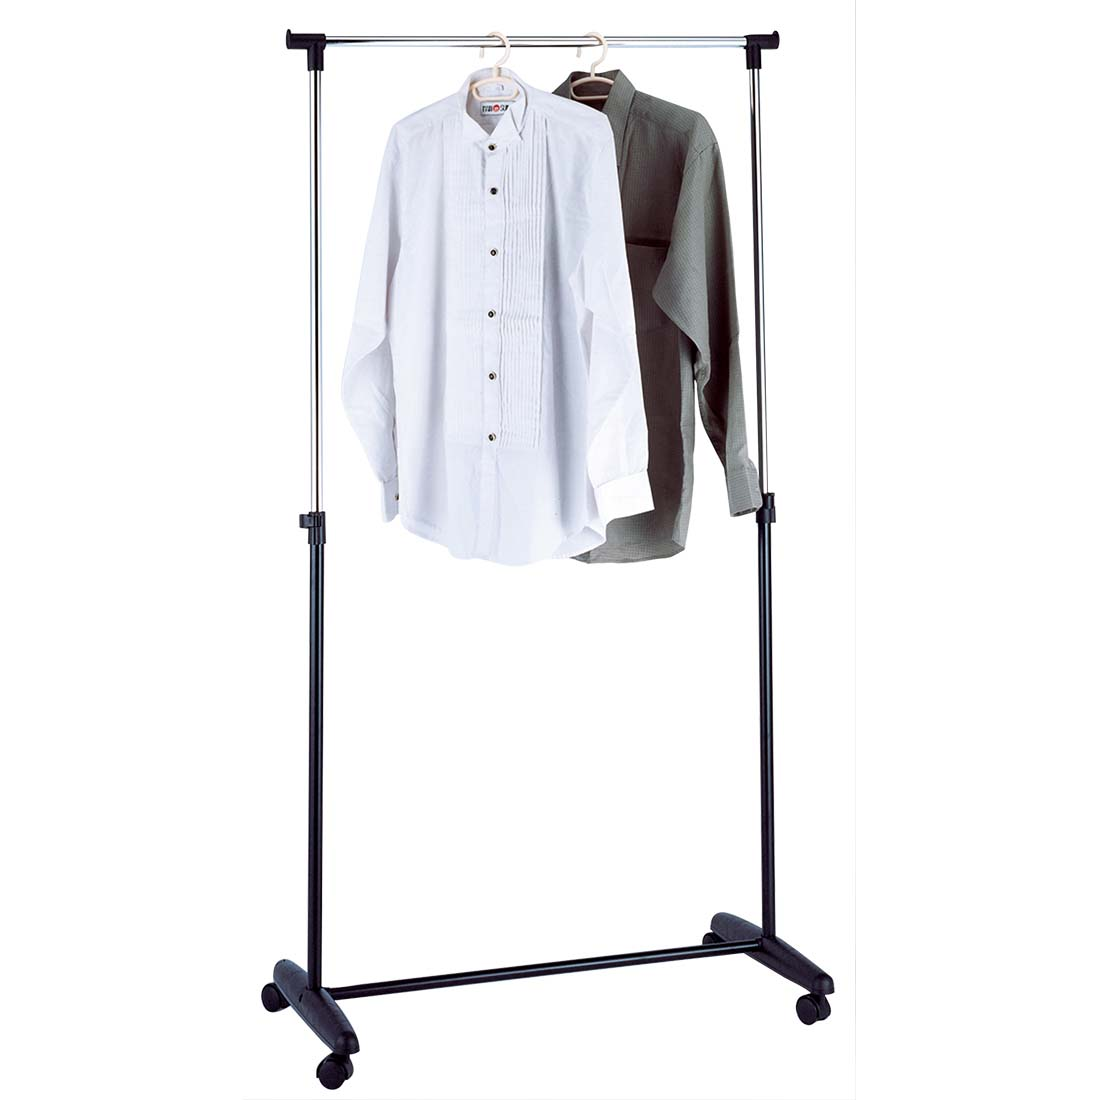 View CLOTHING RACK 33X17X63 INCHES SINGLE POLE ADJUSTABLE